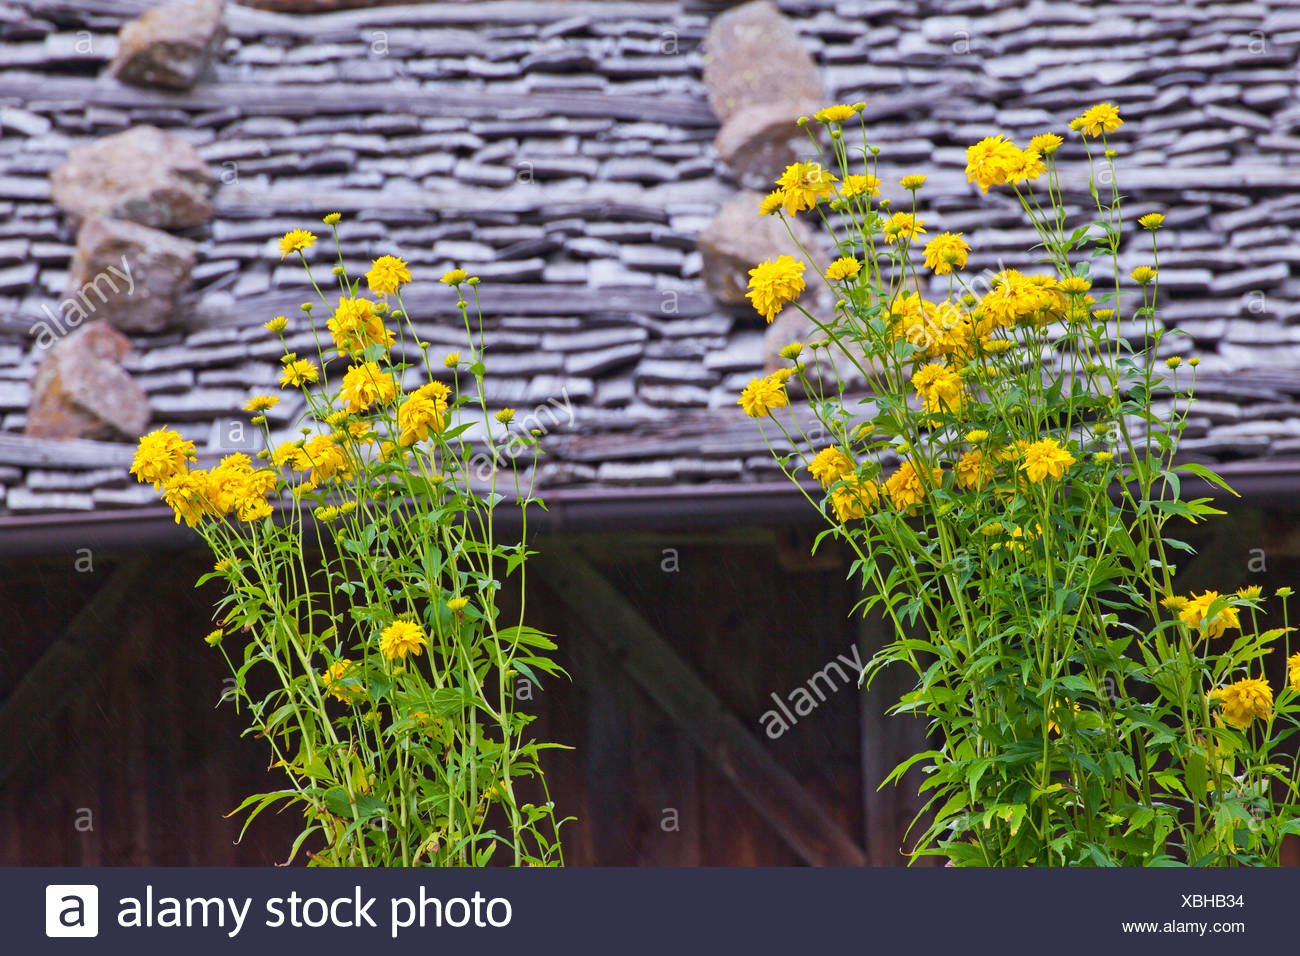 Two bushes of yellow flowers in front of shingle roof stock photo two bushes of yellow flowers in front of shingle roof mightylinksfo